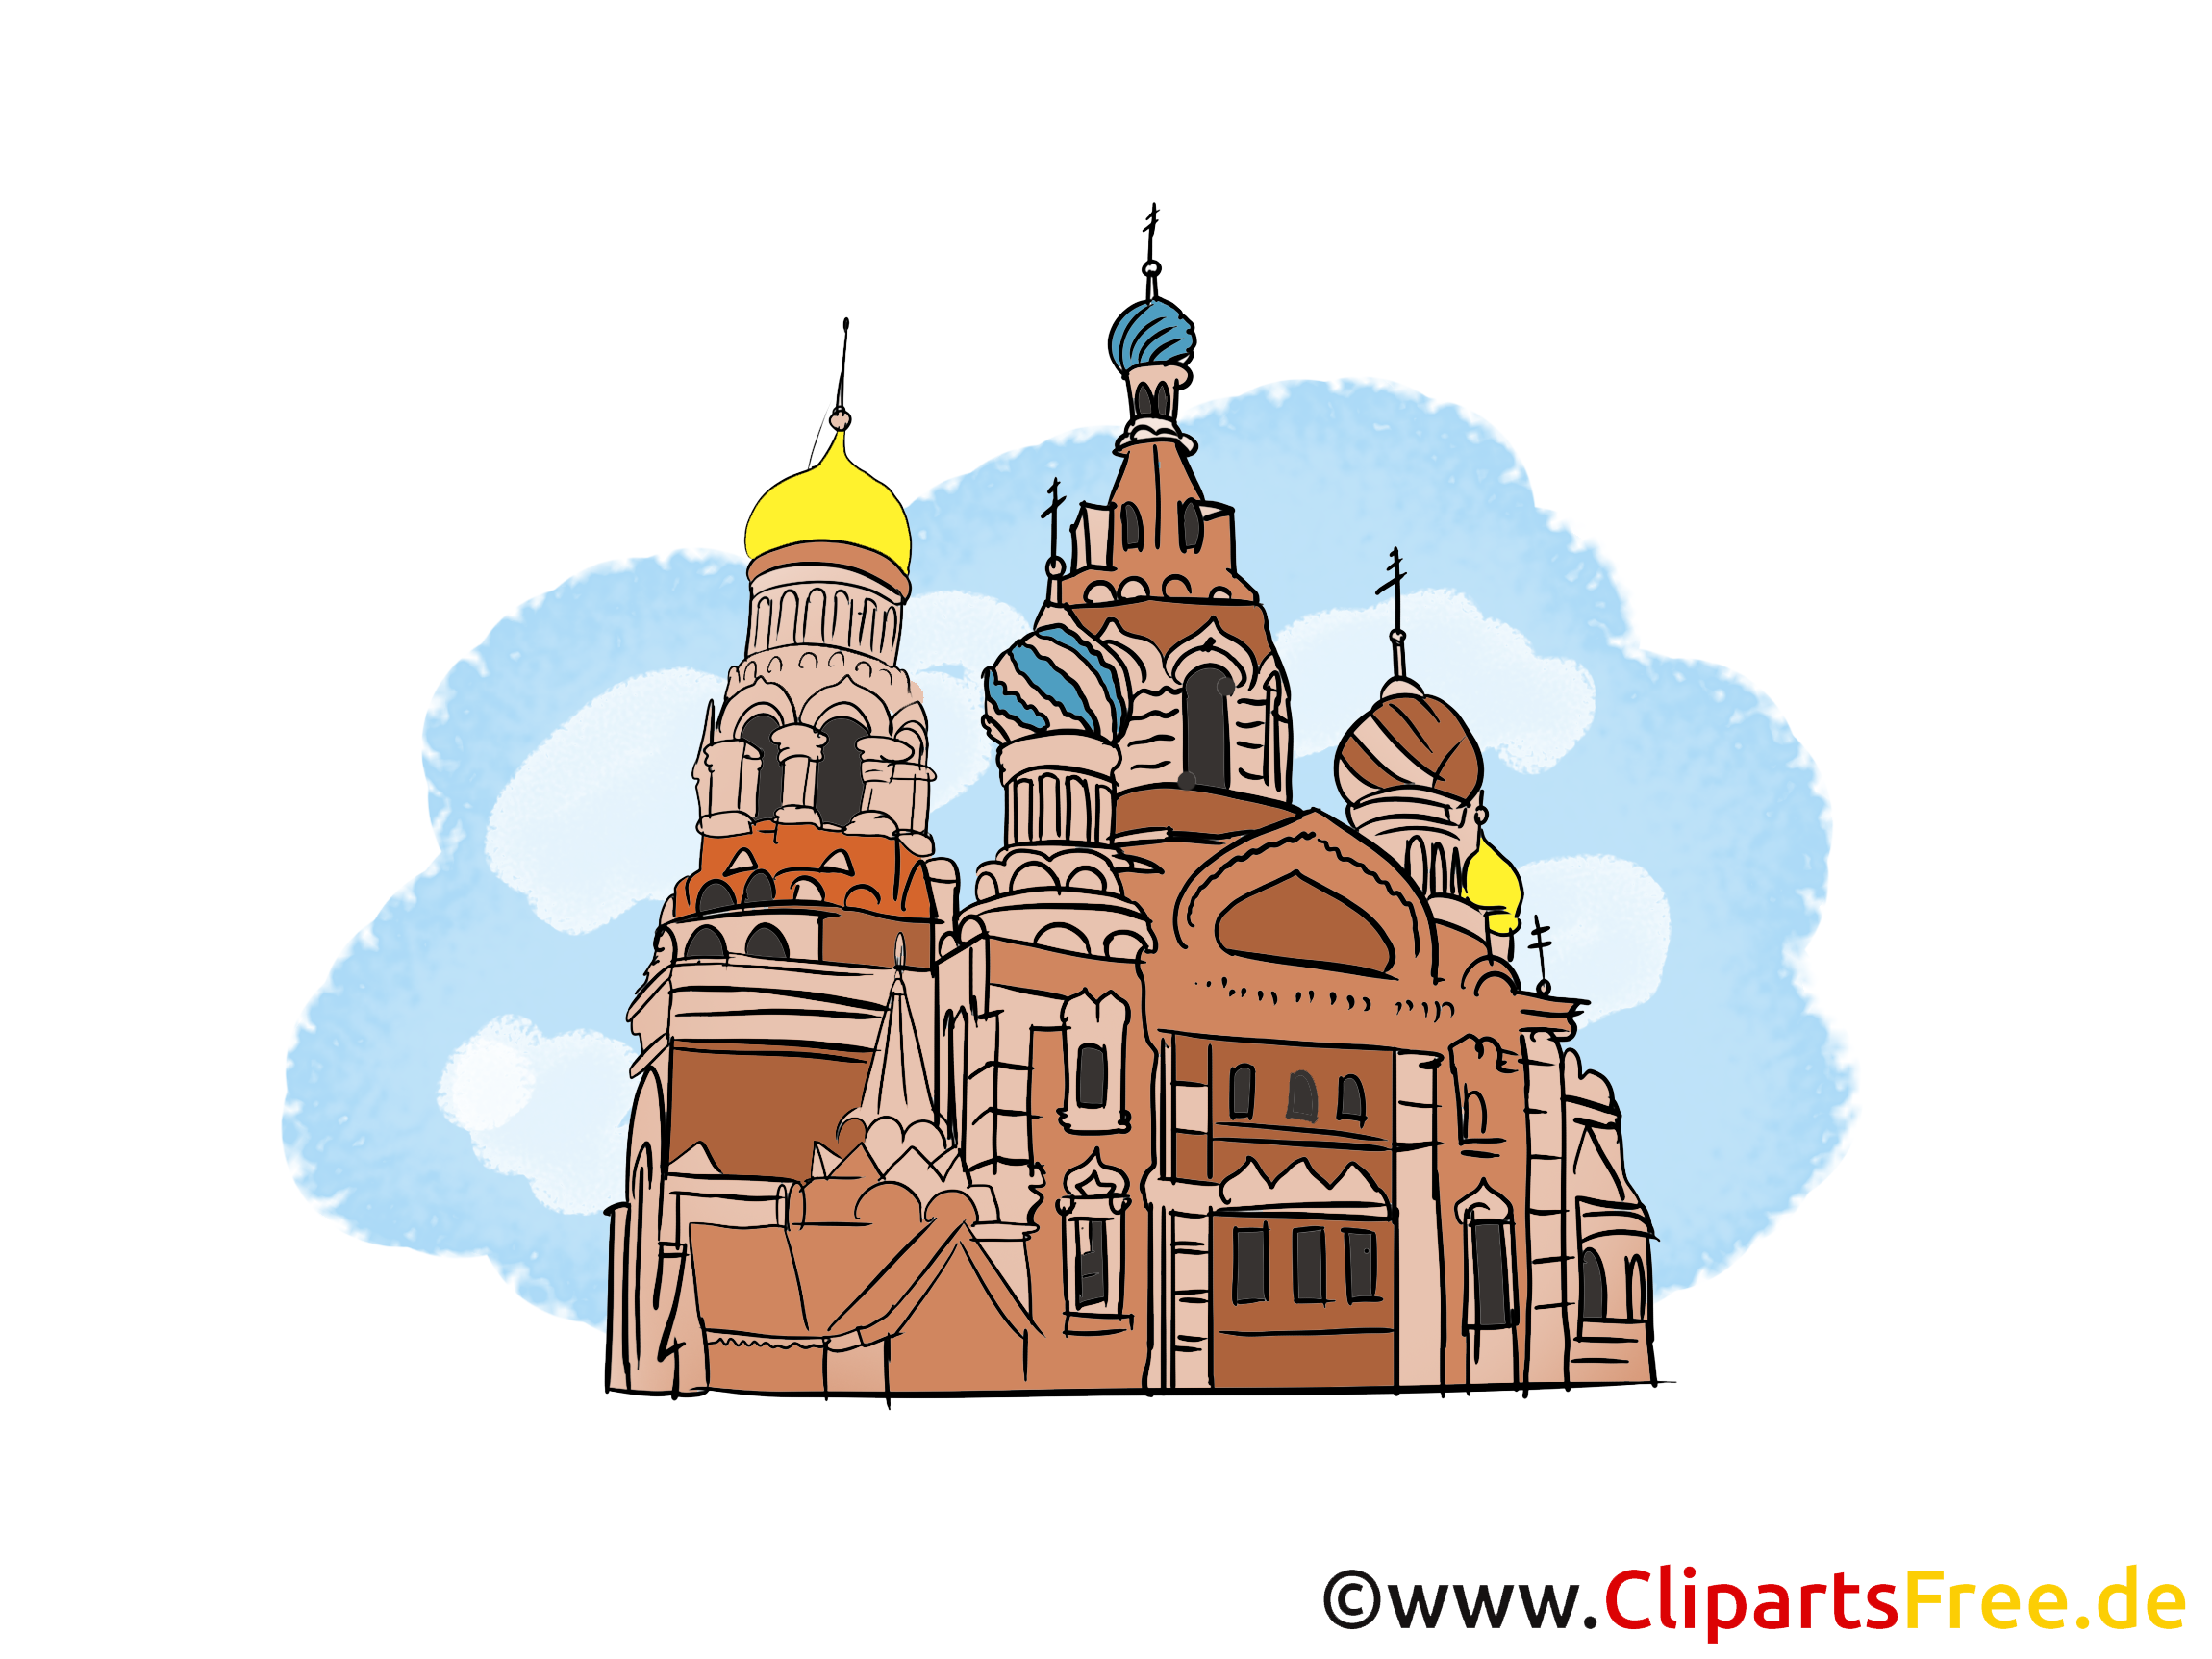 Basilius-Kathedrale Bild, Clipart, Illustration, Grafikm gratis